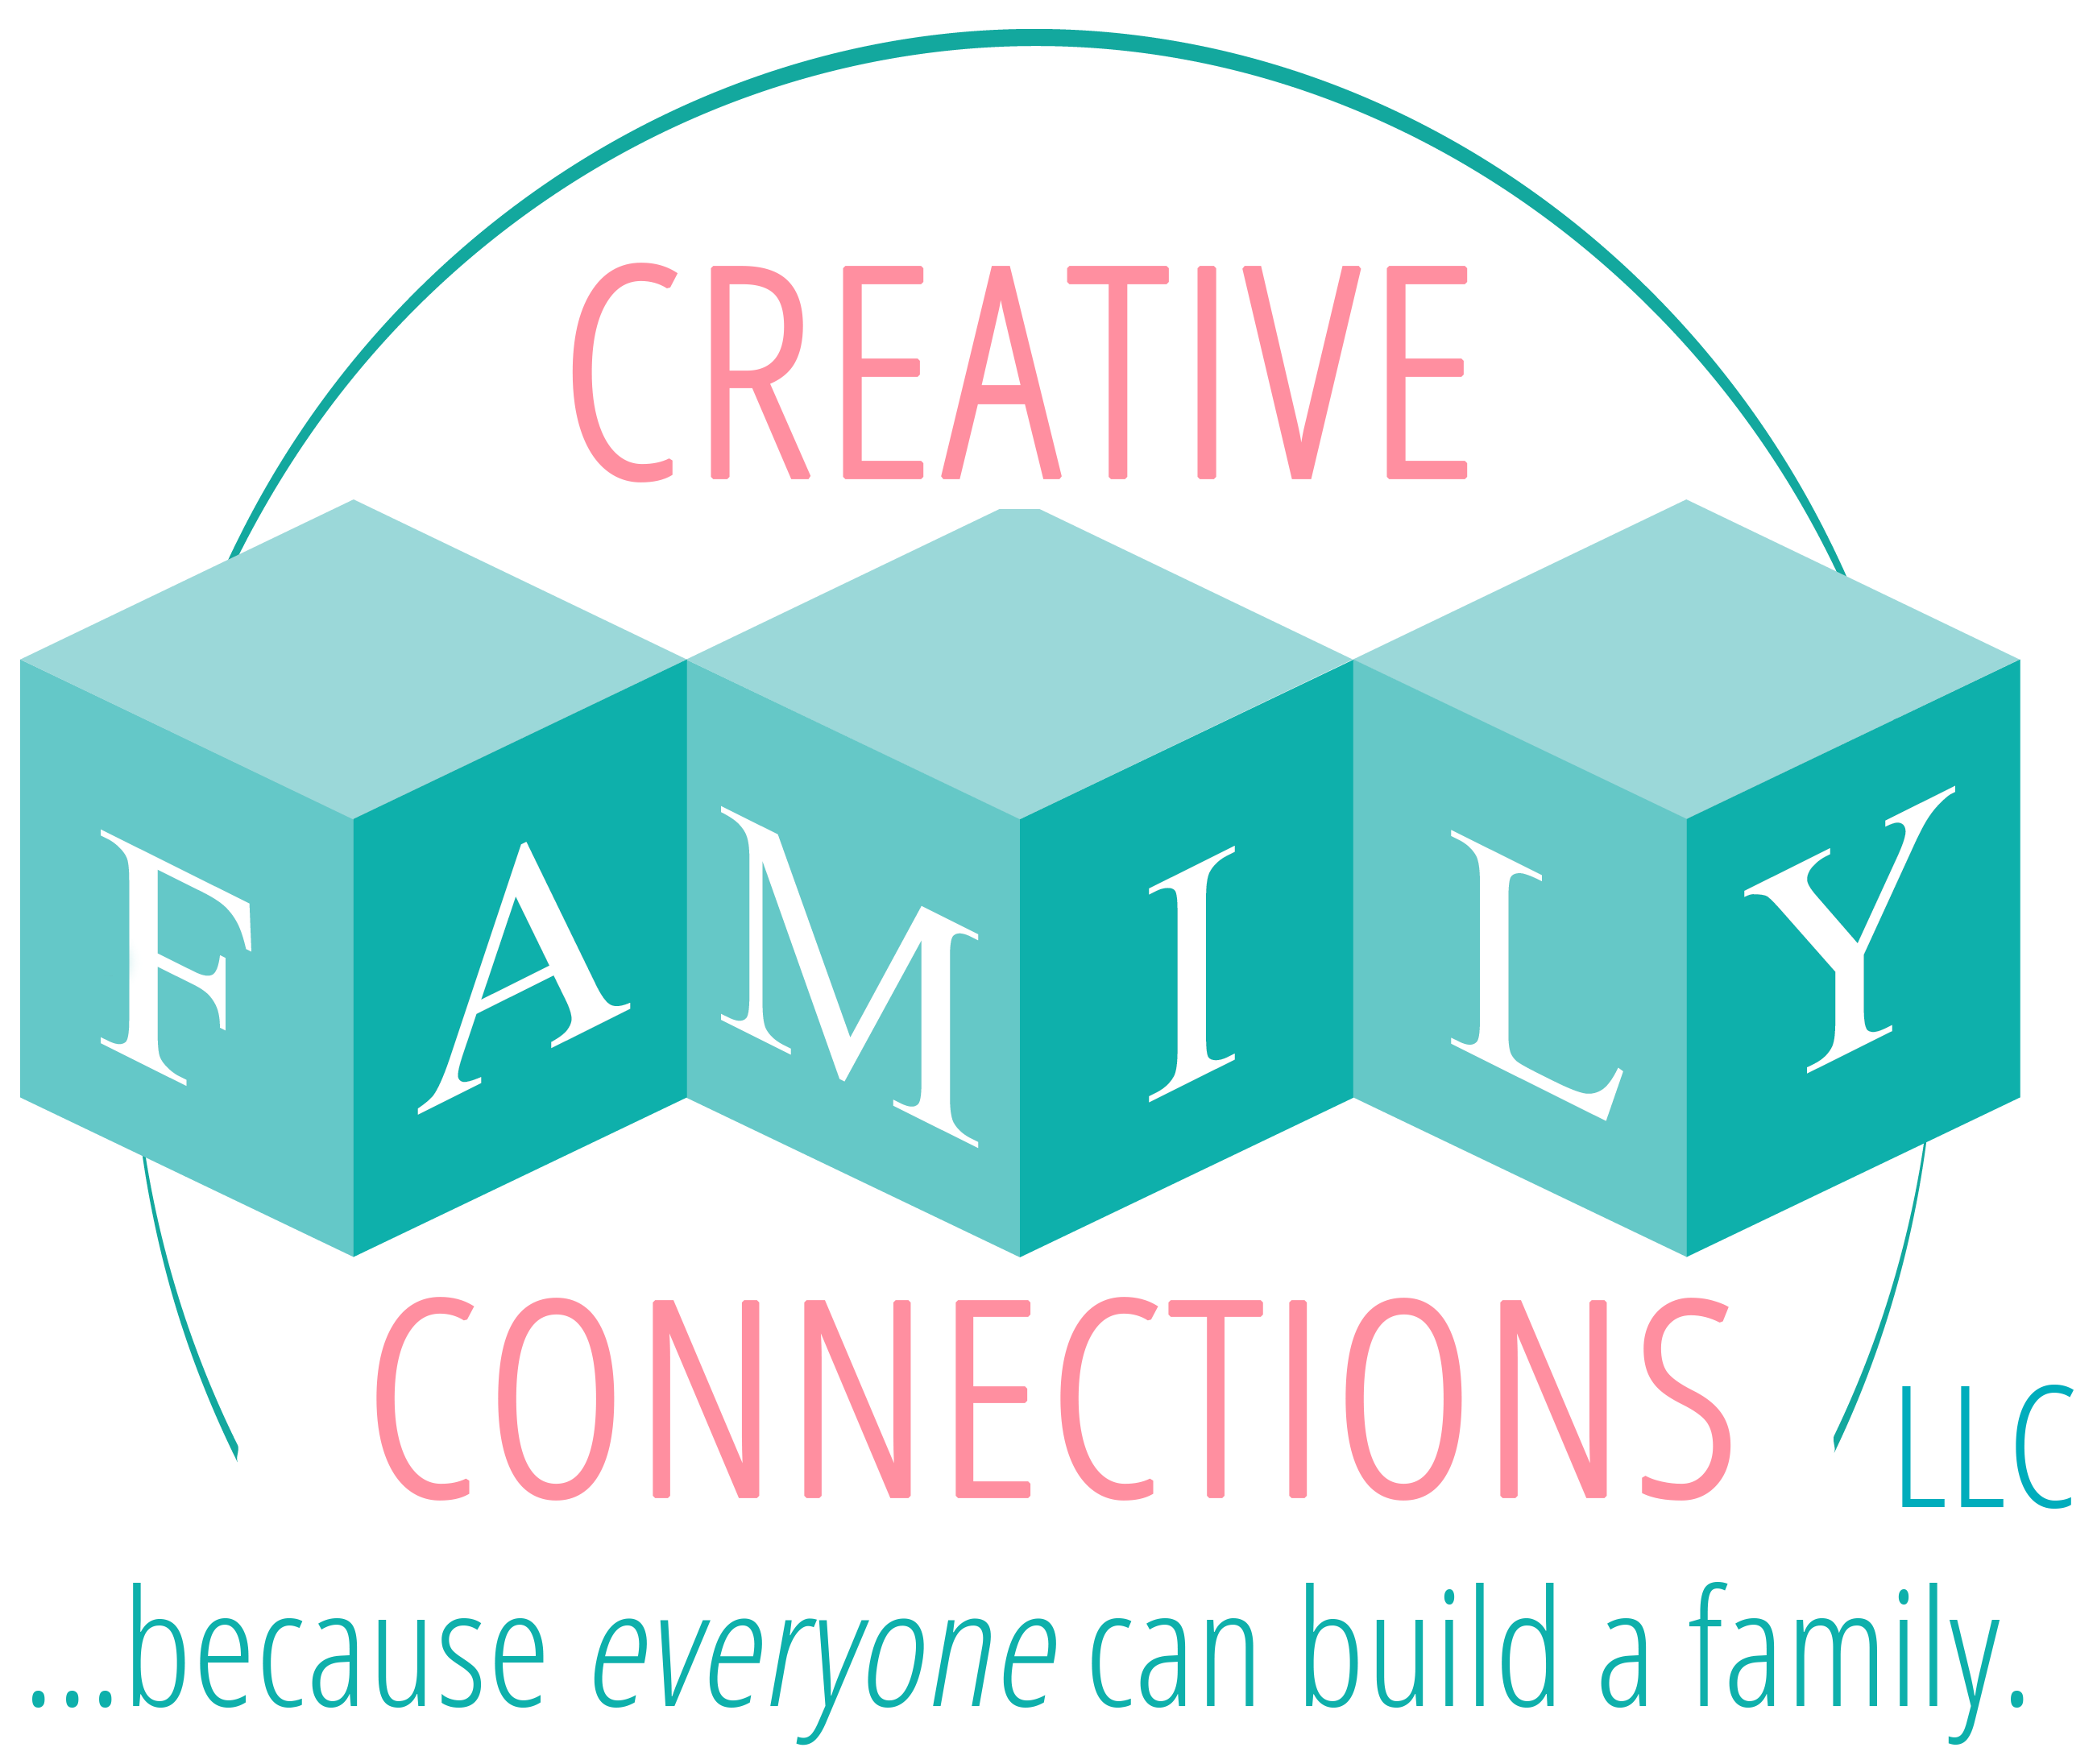 Creative Family Connections